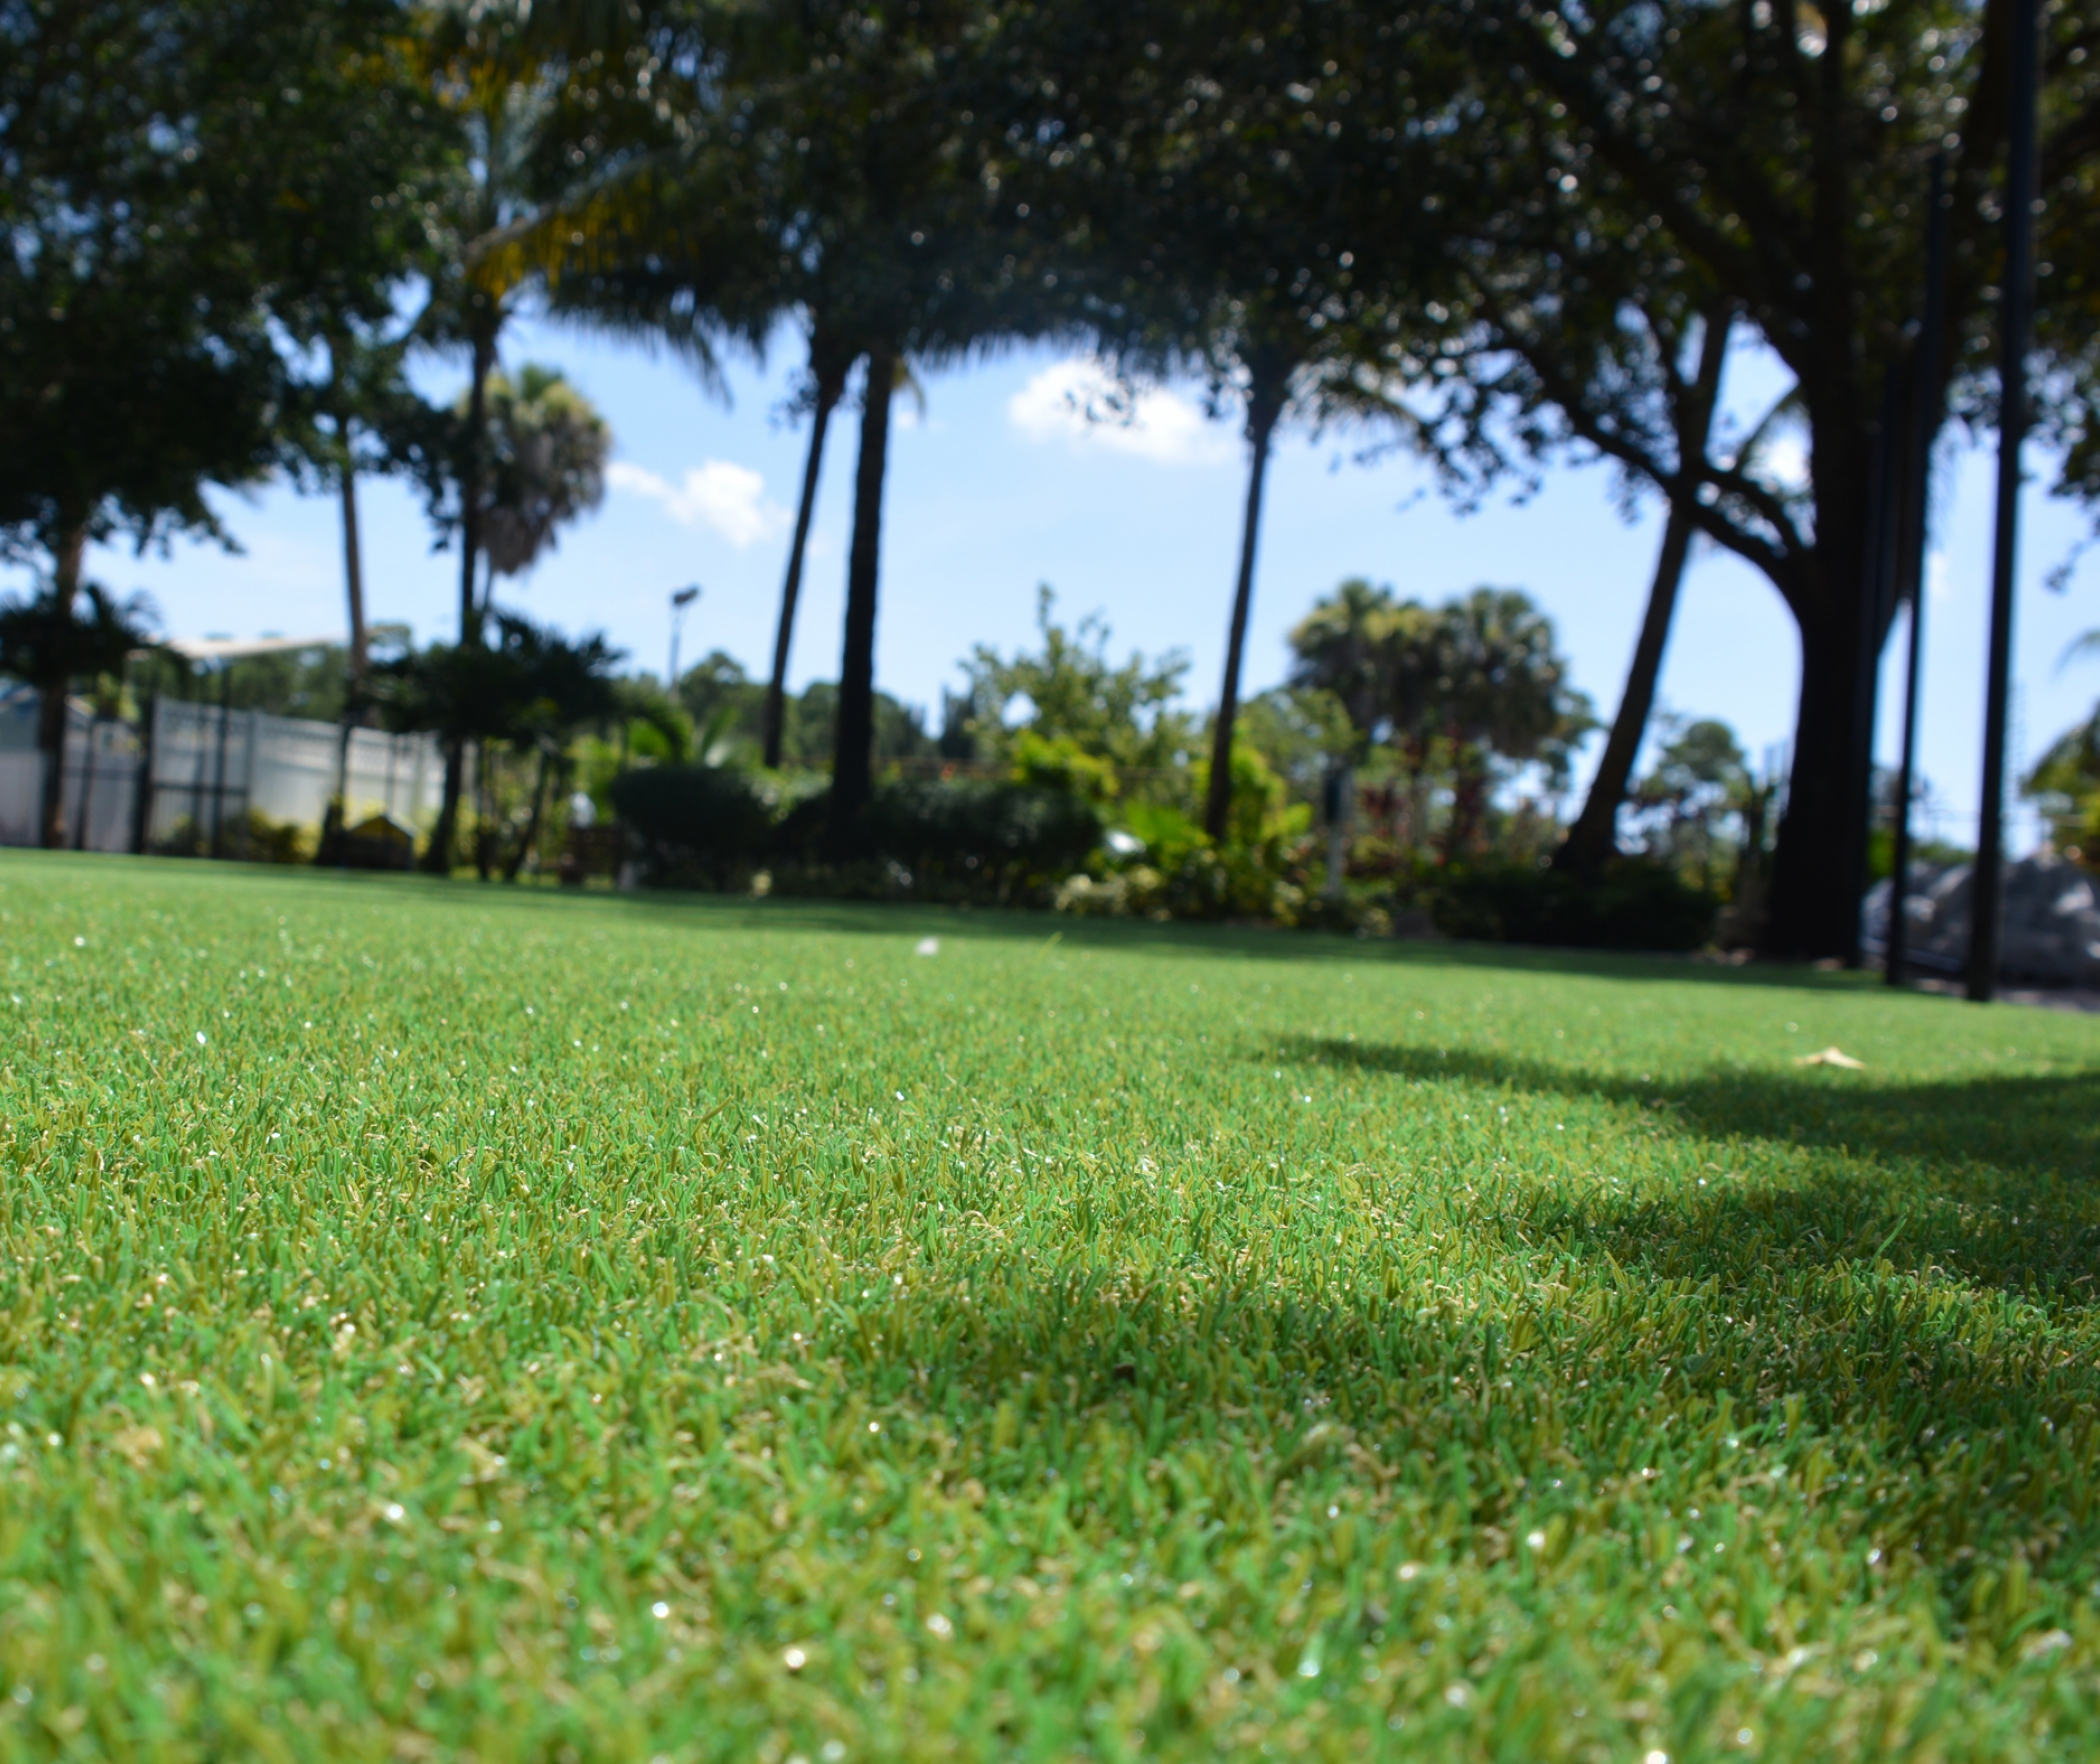 Synthetic Grass, Artificial Grass Chico California, Fake Grass